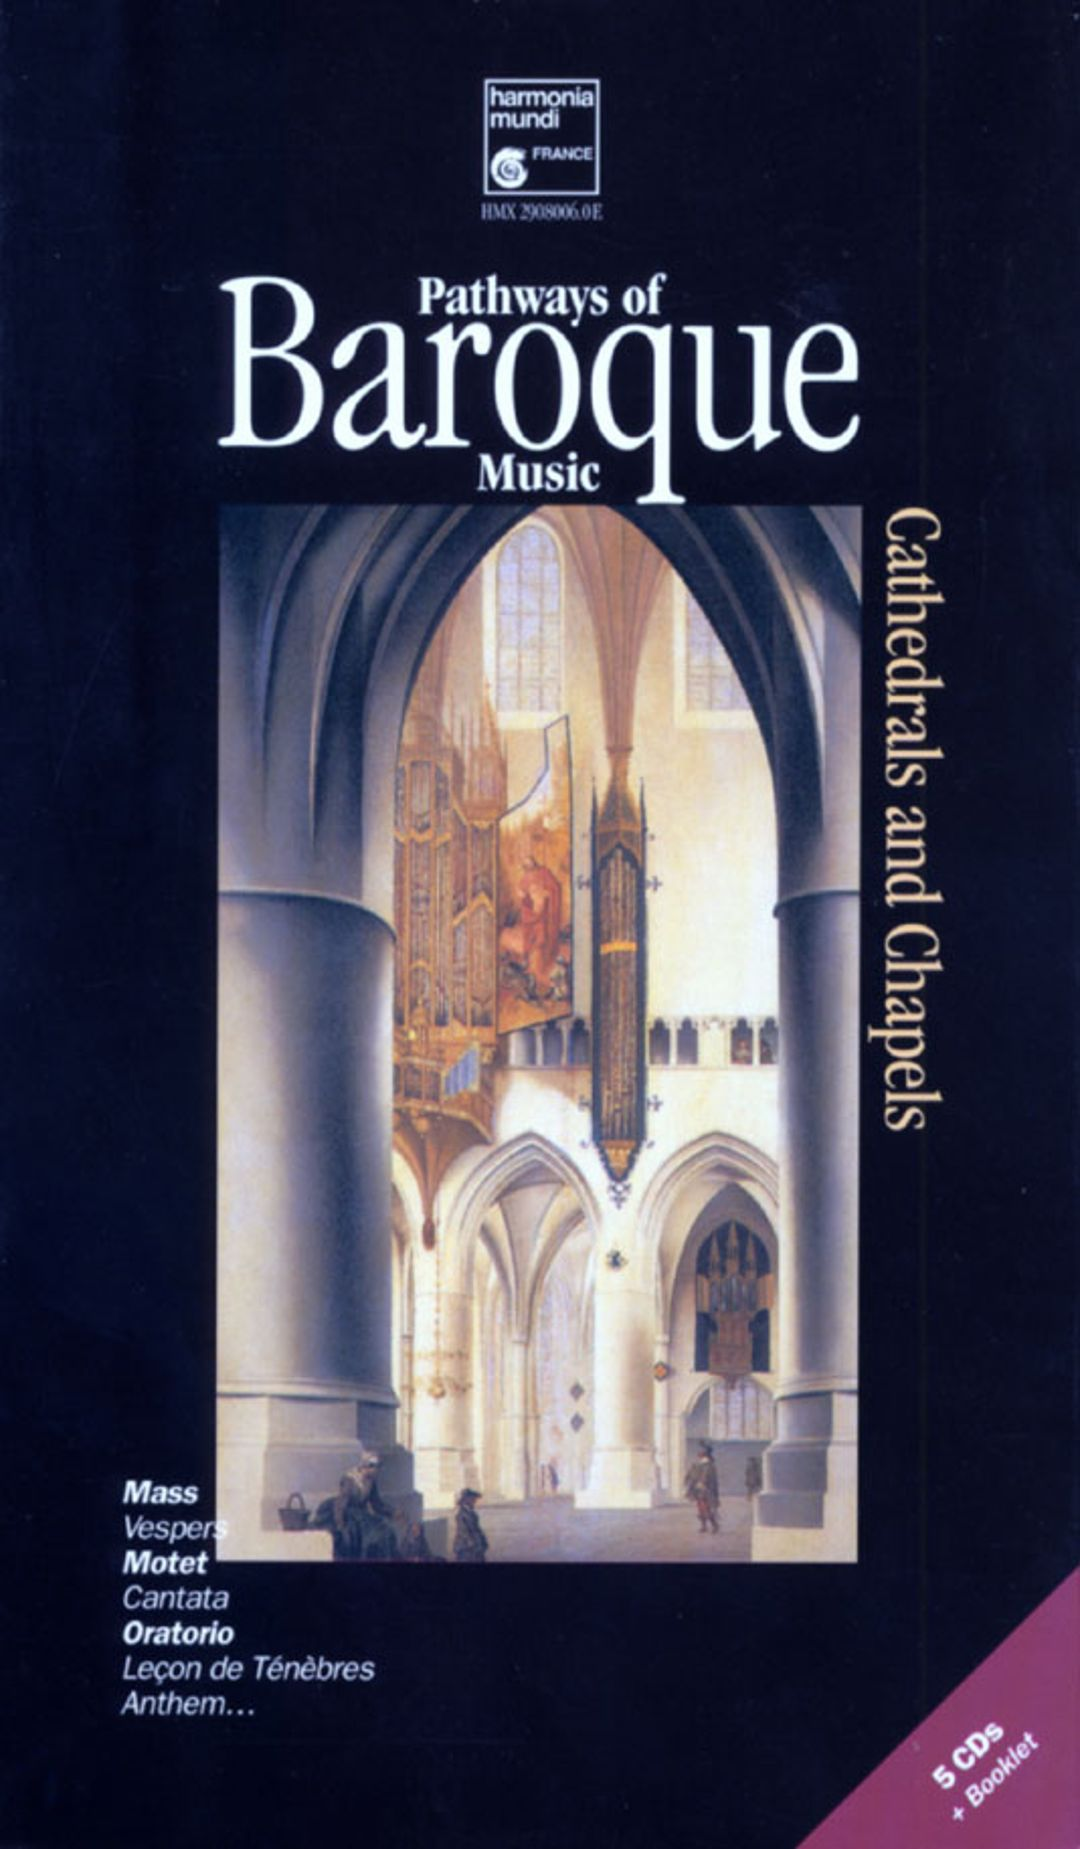 Pathways of Baroque Music: Cathedrals and Chapels